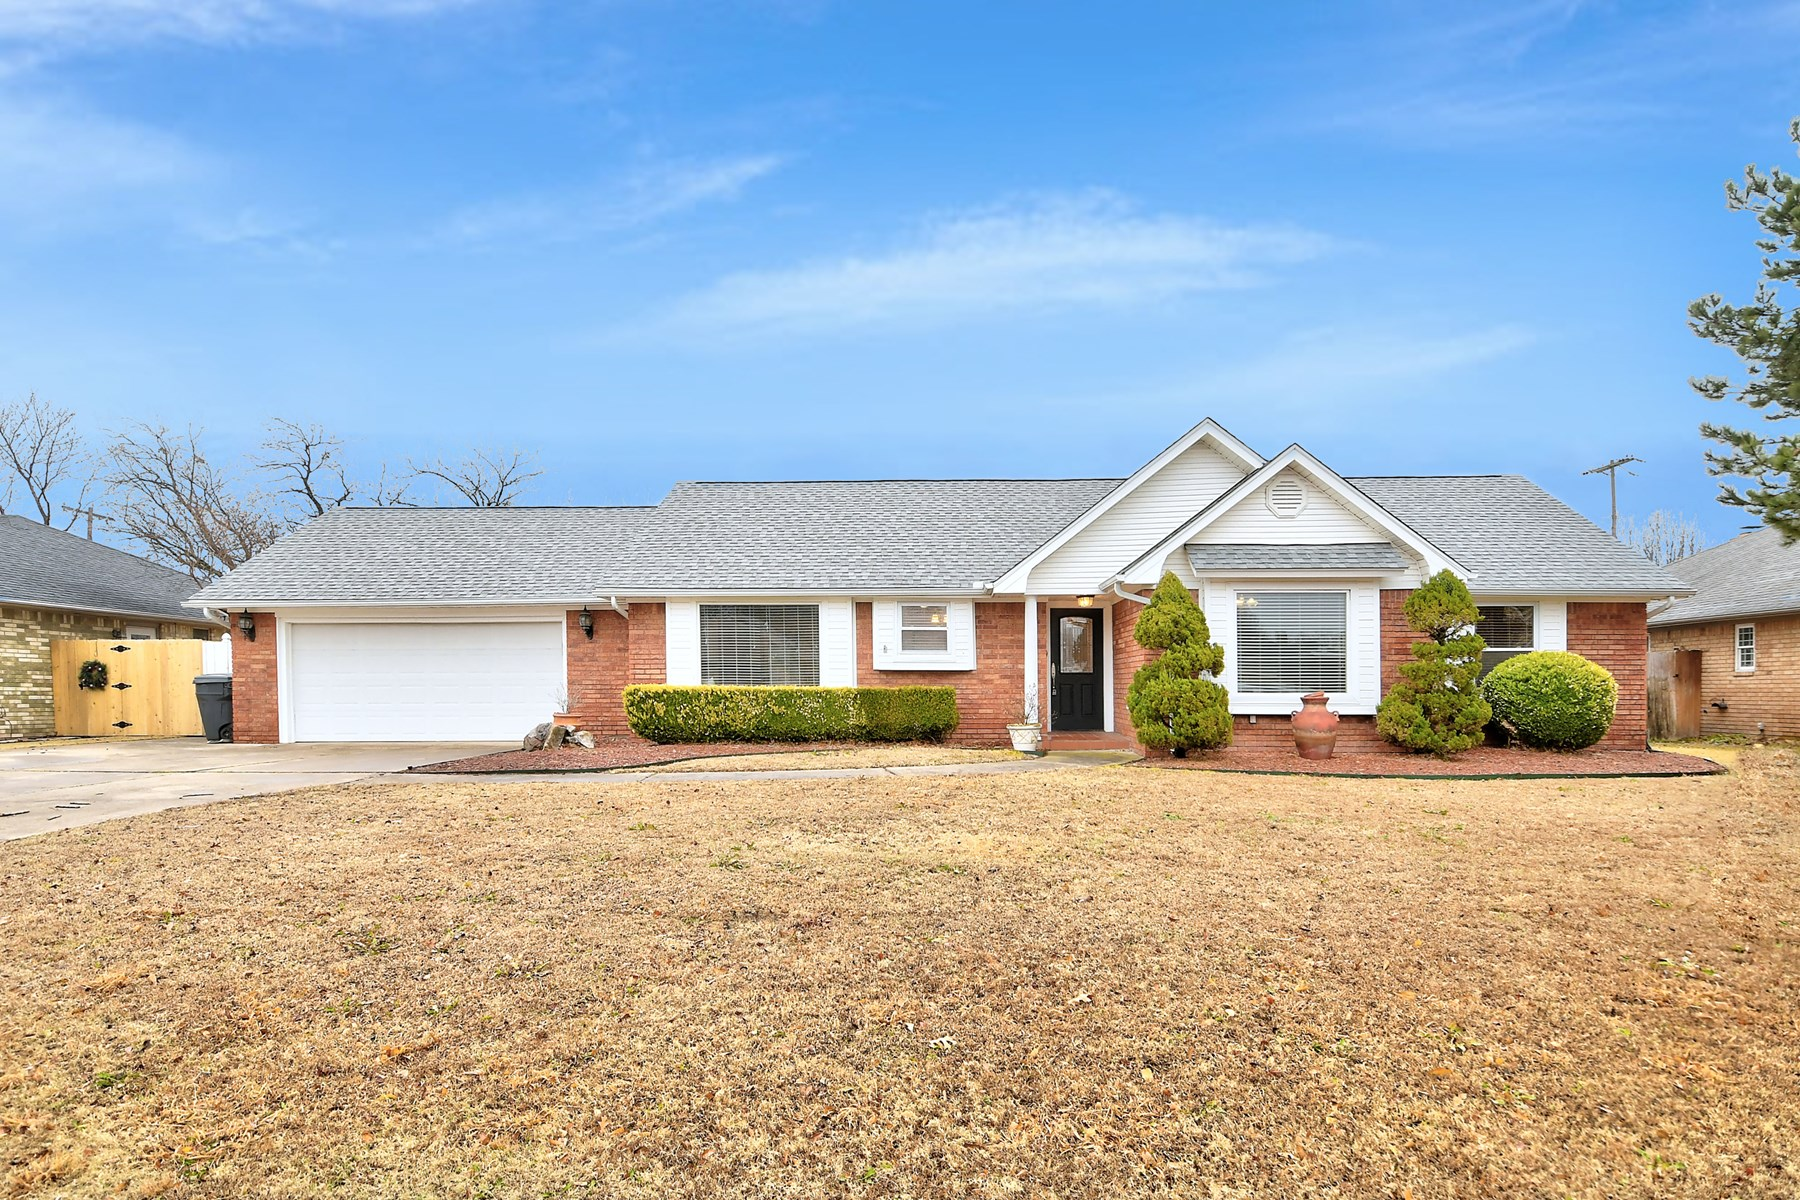 SOUTHERN OKLAHOMA HOME FOR SALE-PLAINVIEW SCHOOLS